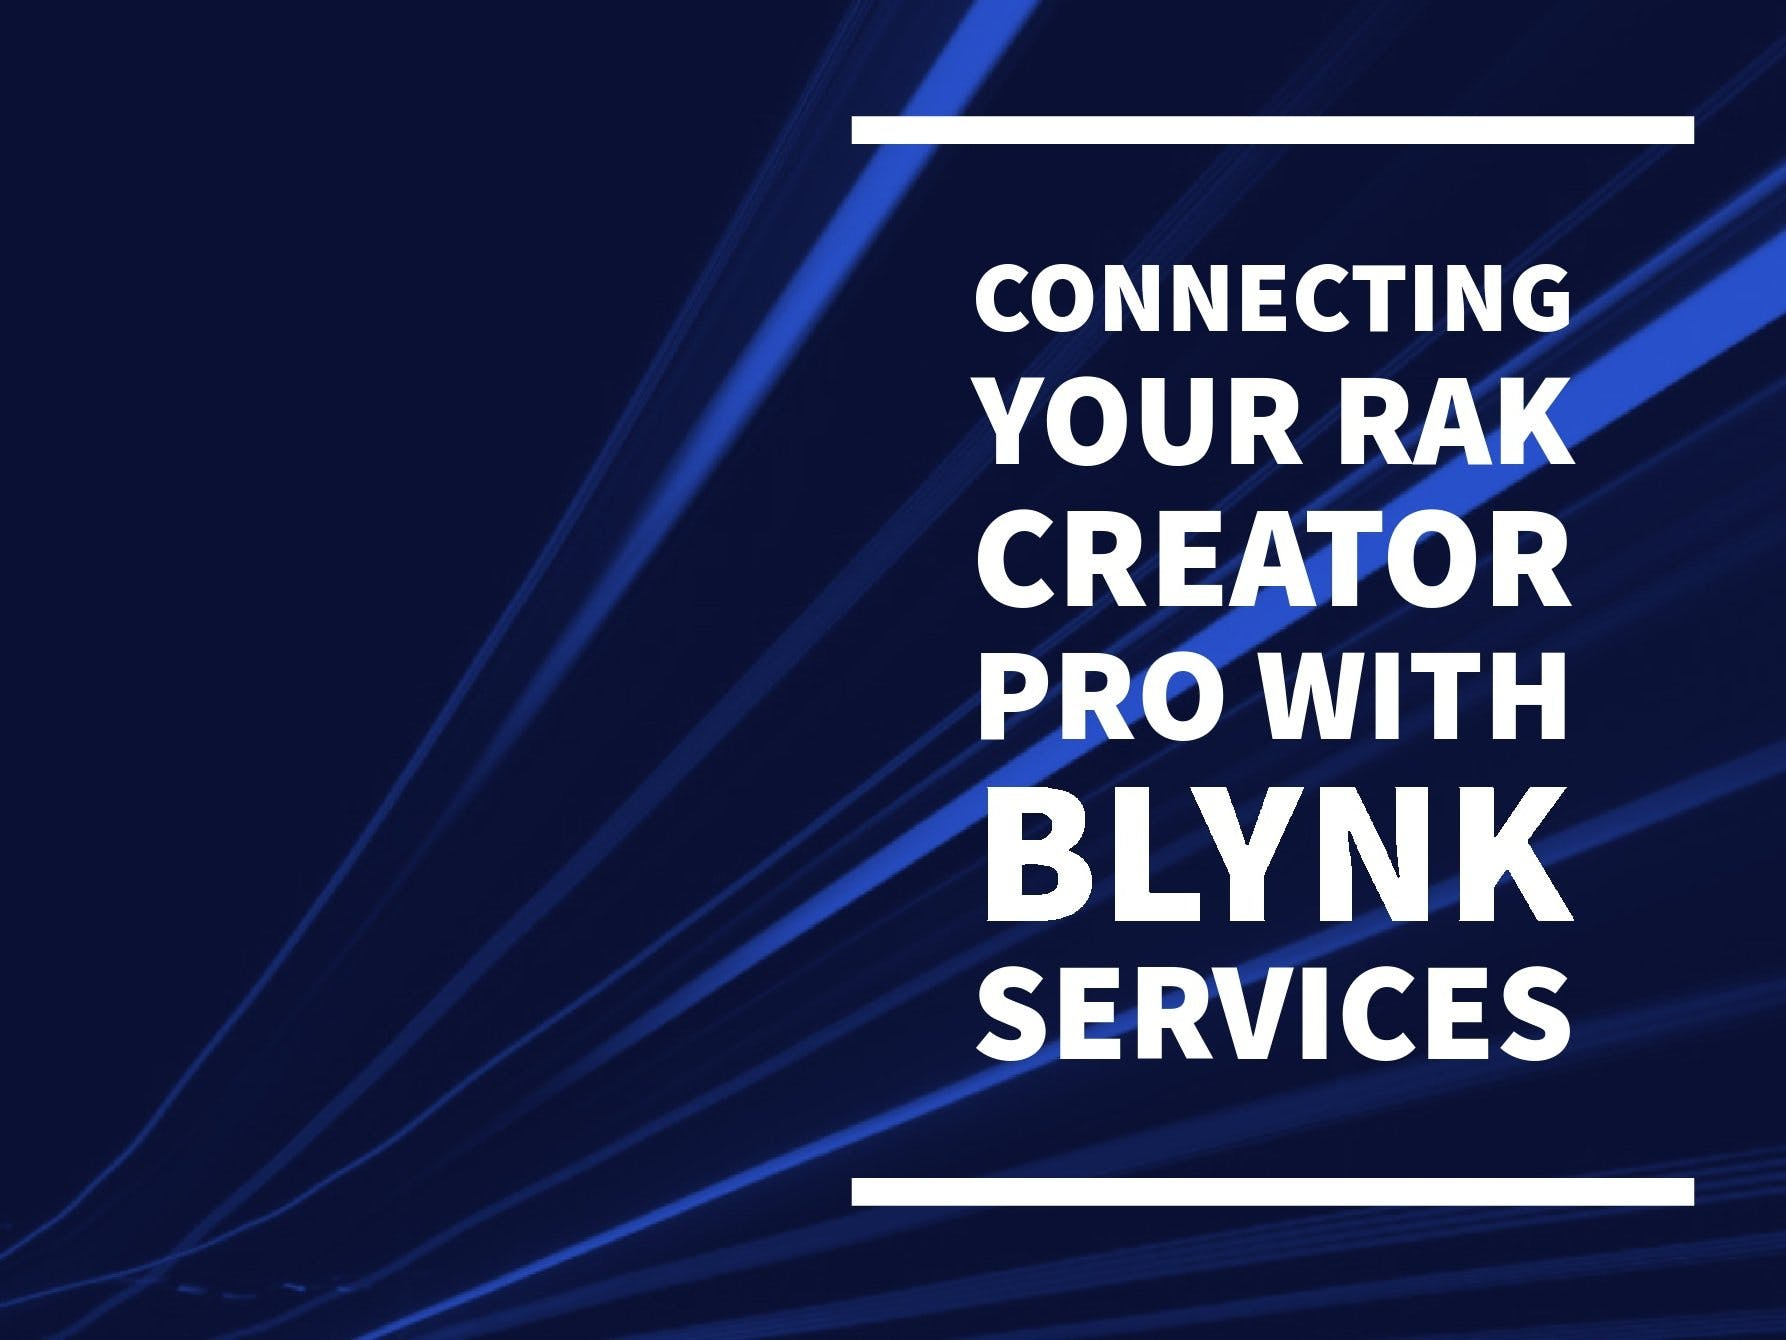 Connecting your Rak Creator pro with Blynk Services